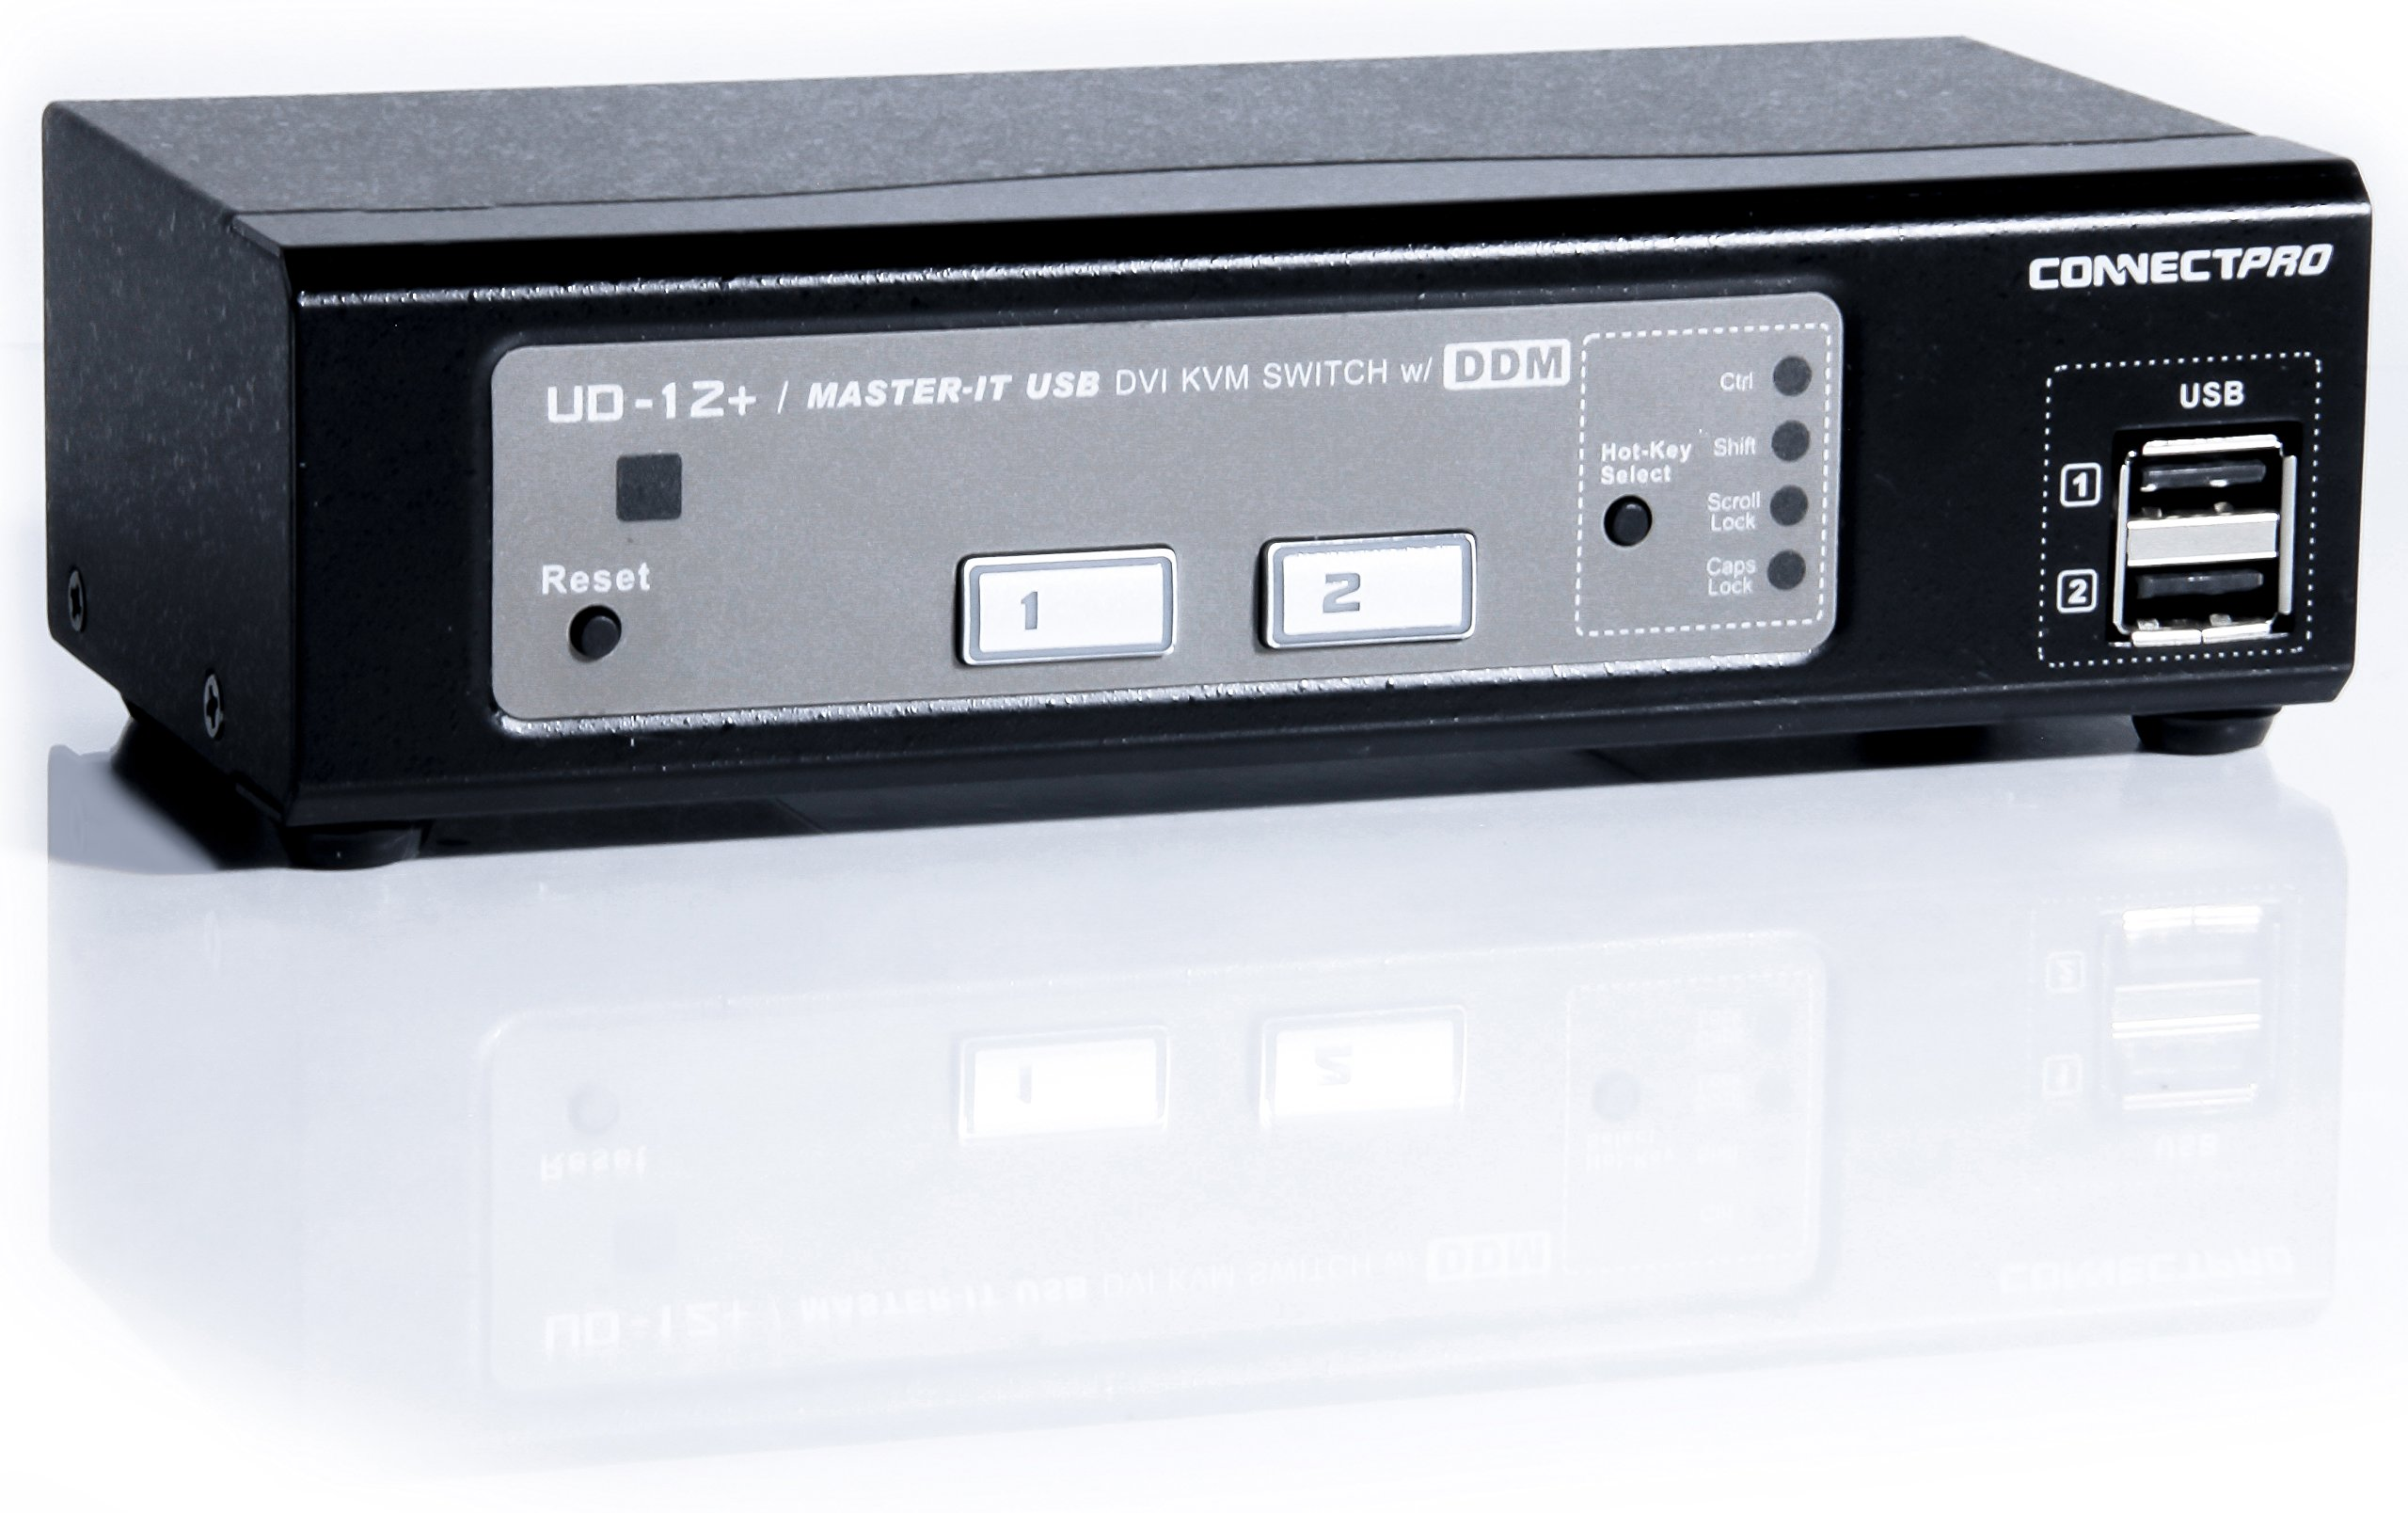 ConnectPRO UD-12+KIT, 2-port USB DVI KVM switch w/ DDM & multi-hotkey by ConnectPRO (Image #1)